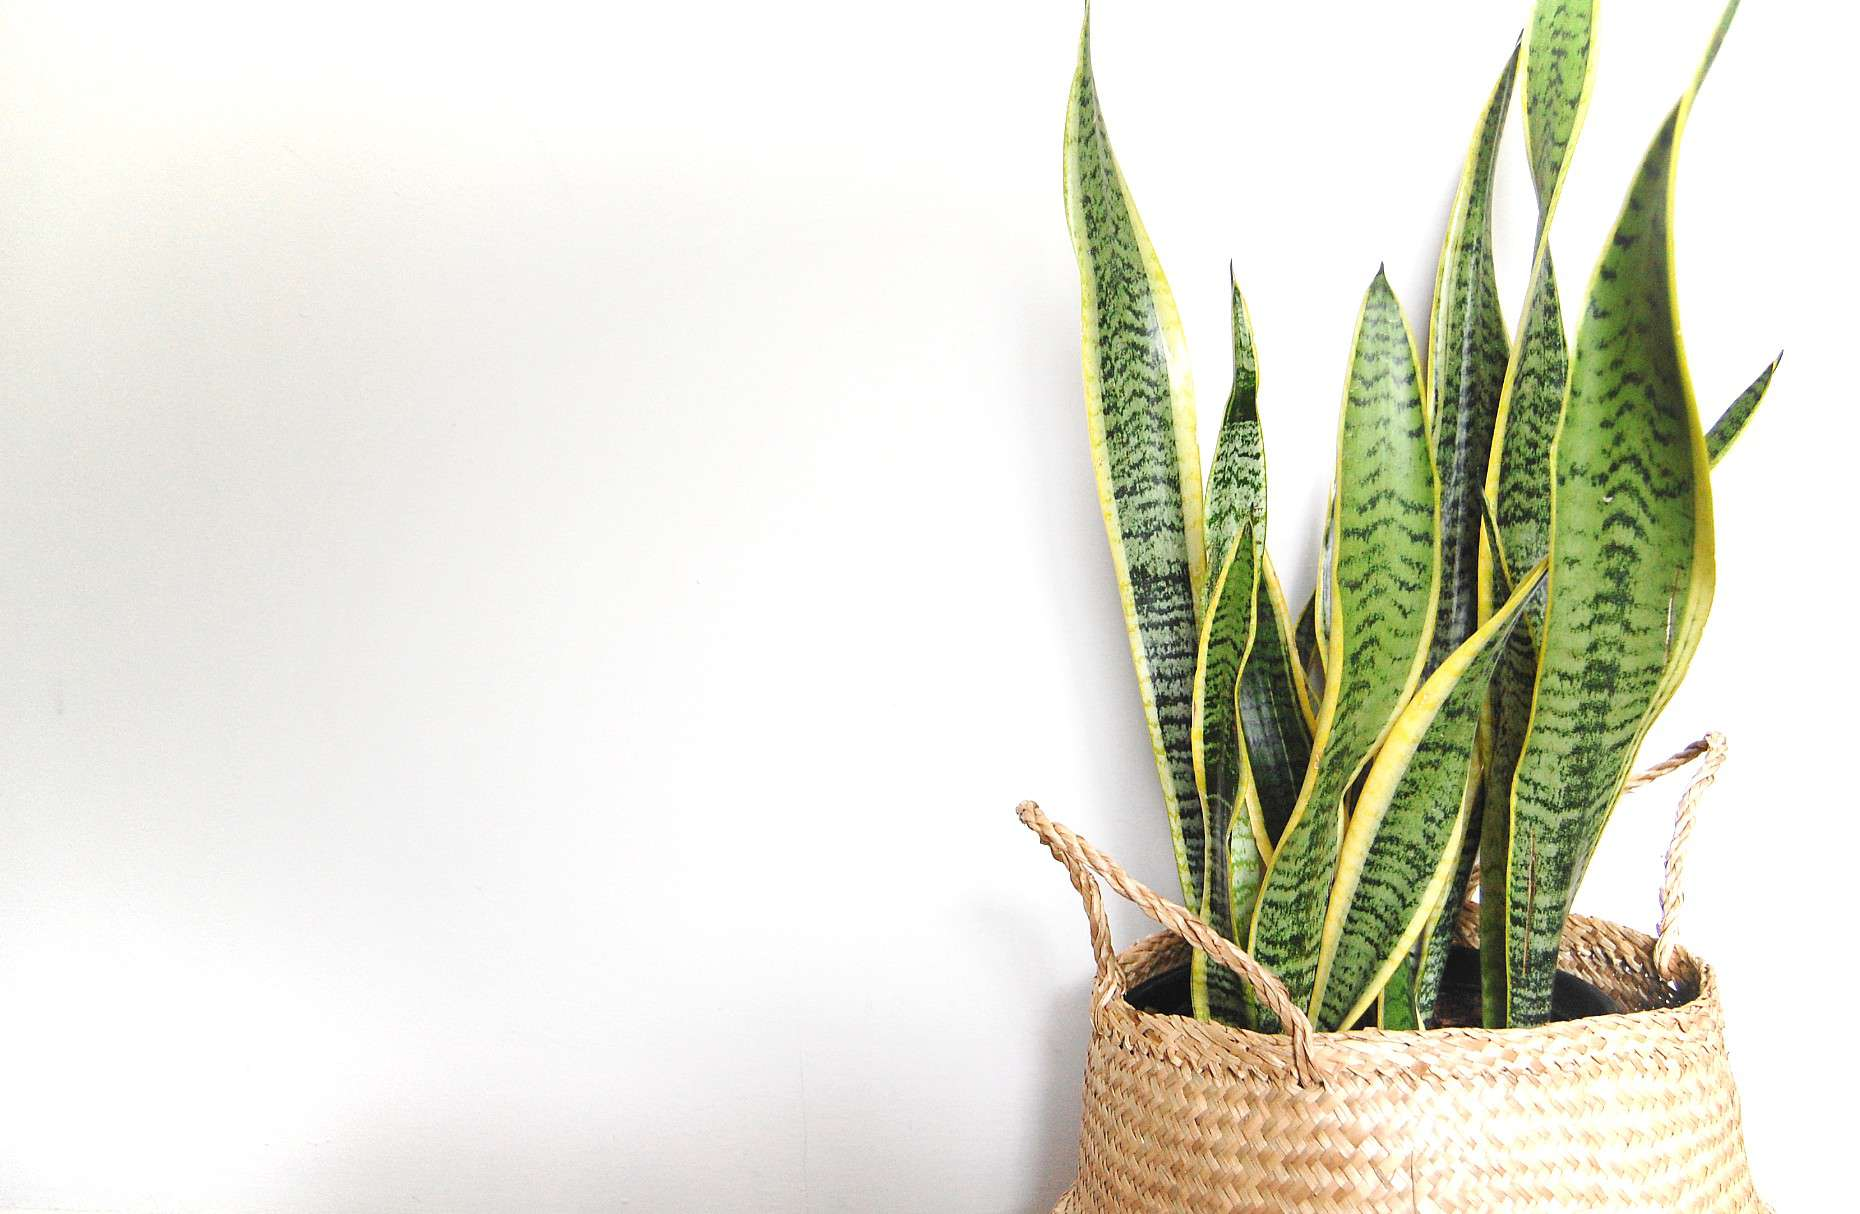 A snake plant sits in a wicker basket in front of a white wall.